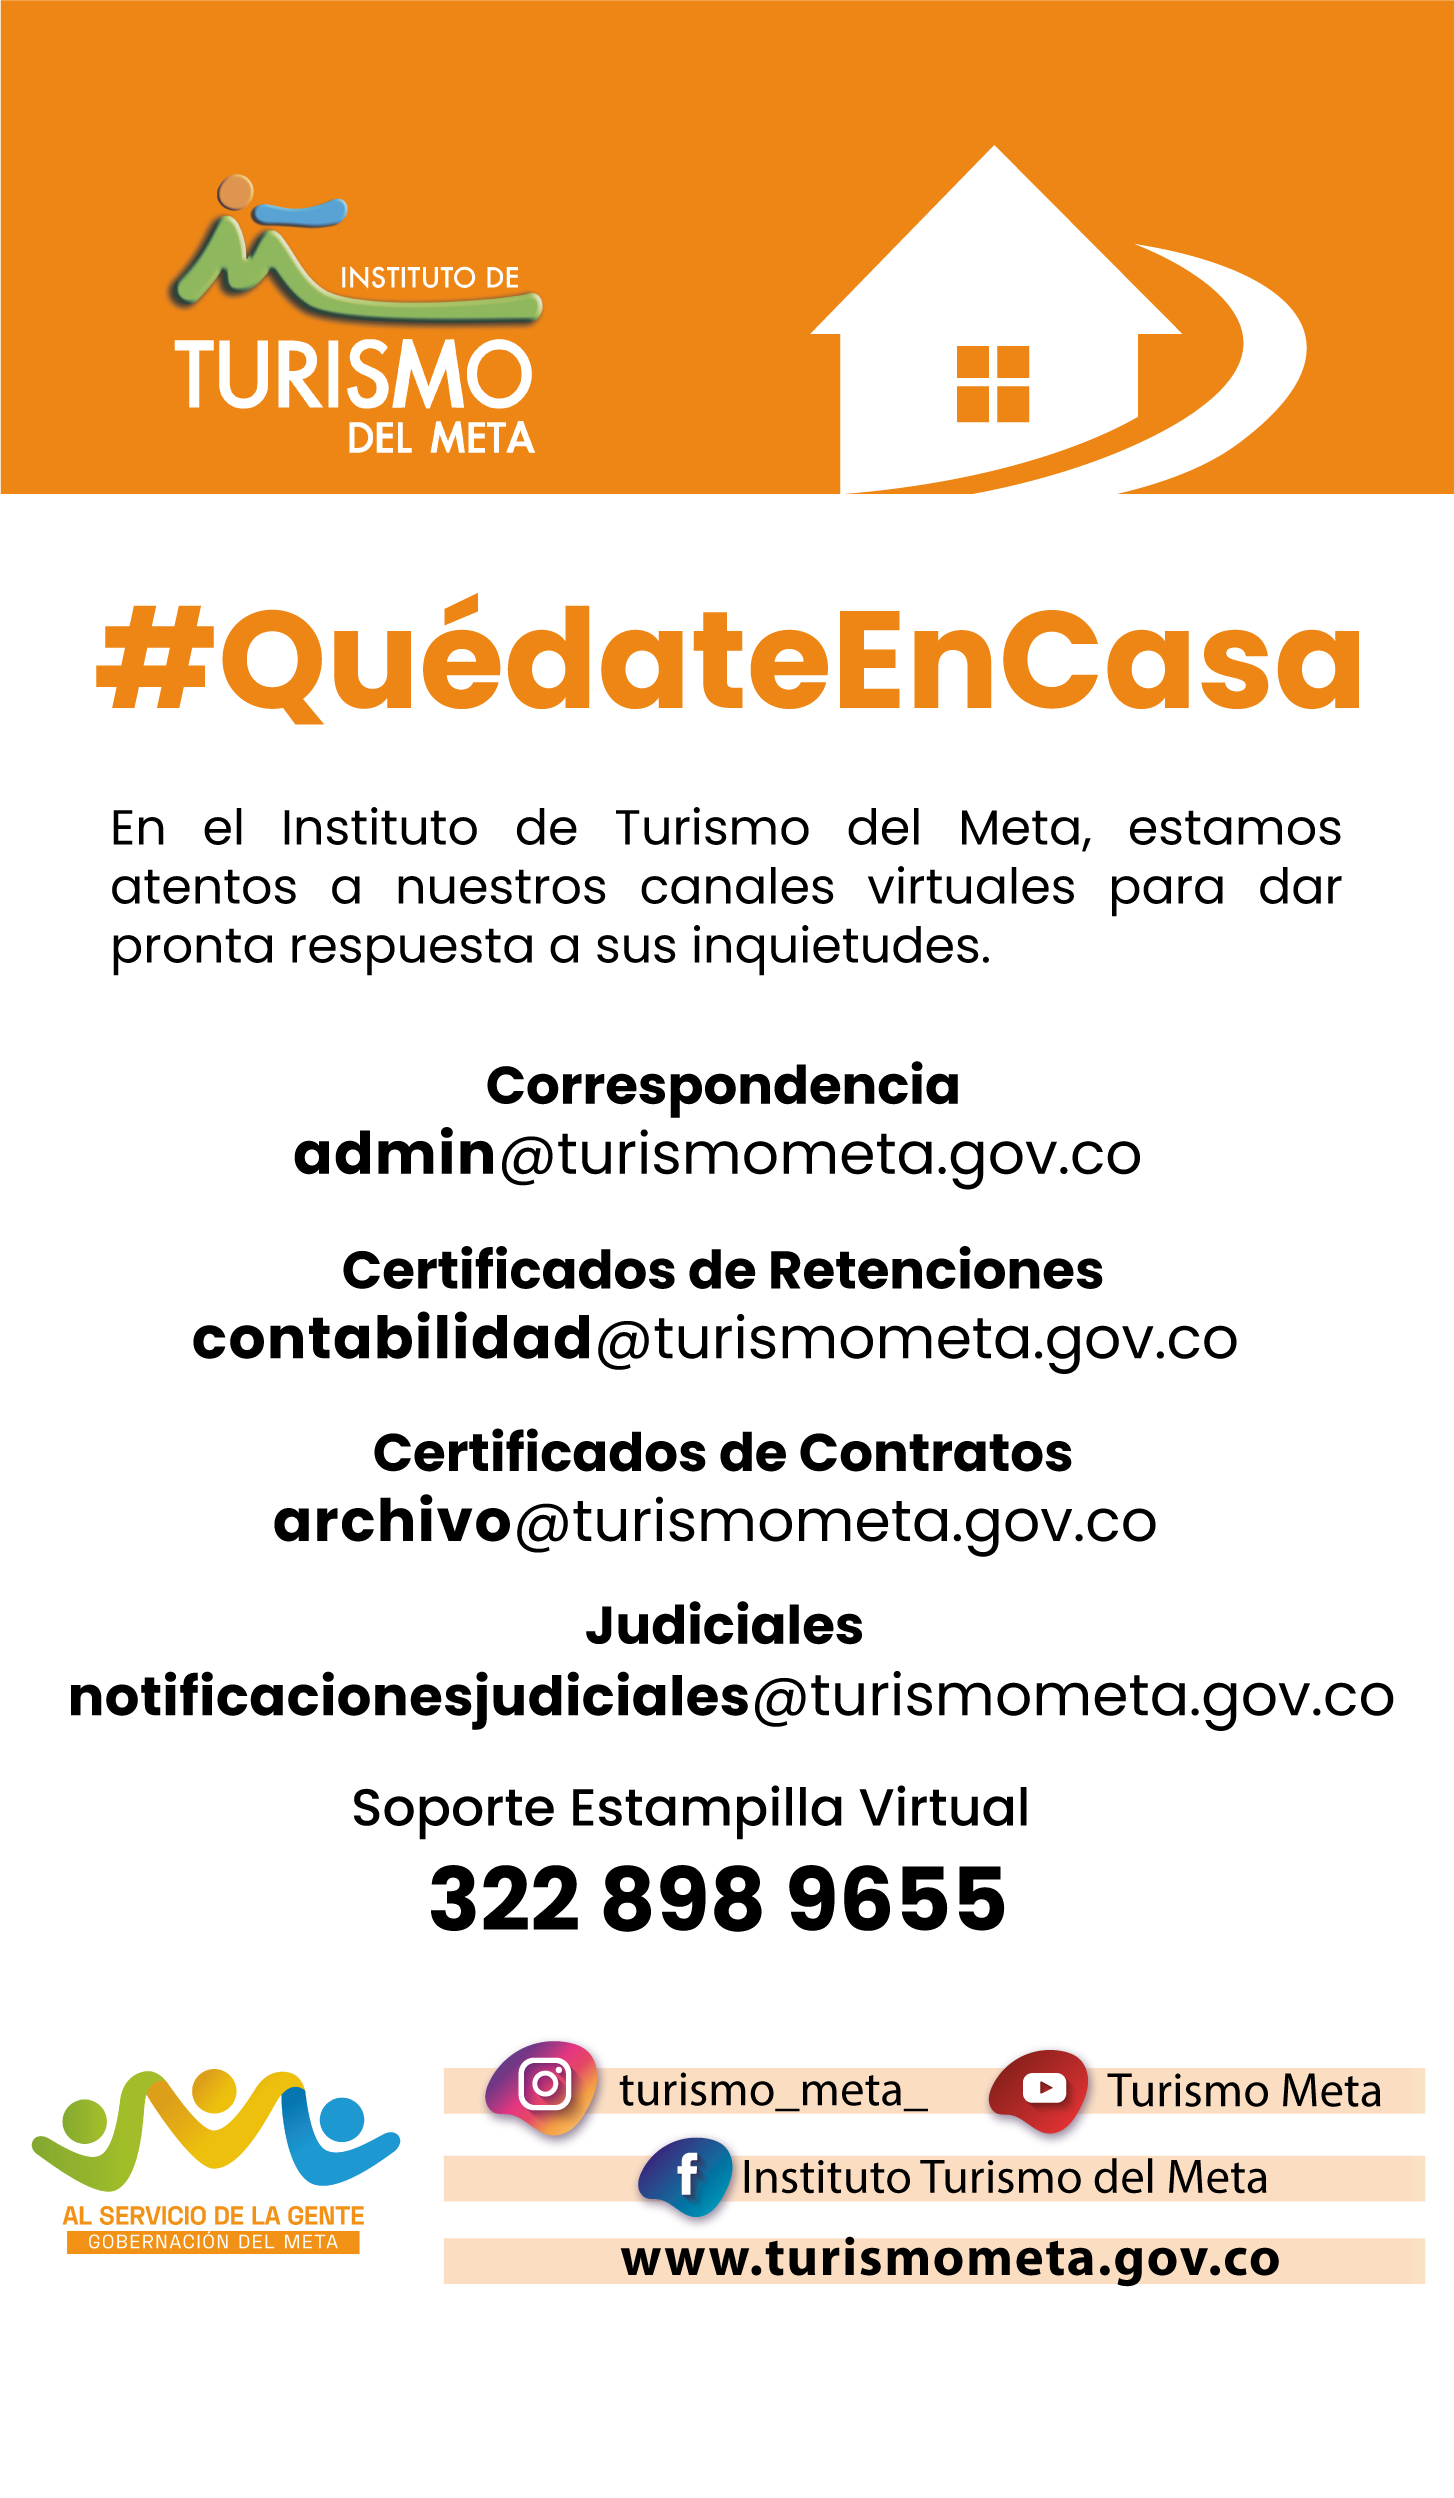 atencion virtual ITM hist Mesa de trabajo 1 copia